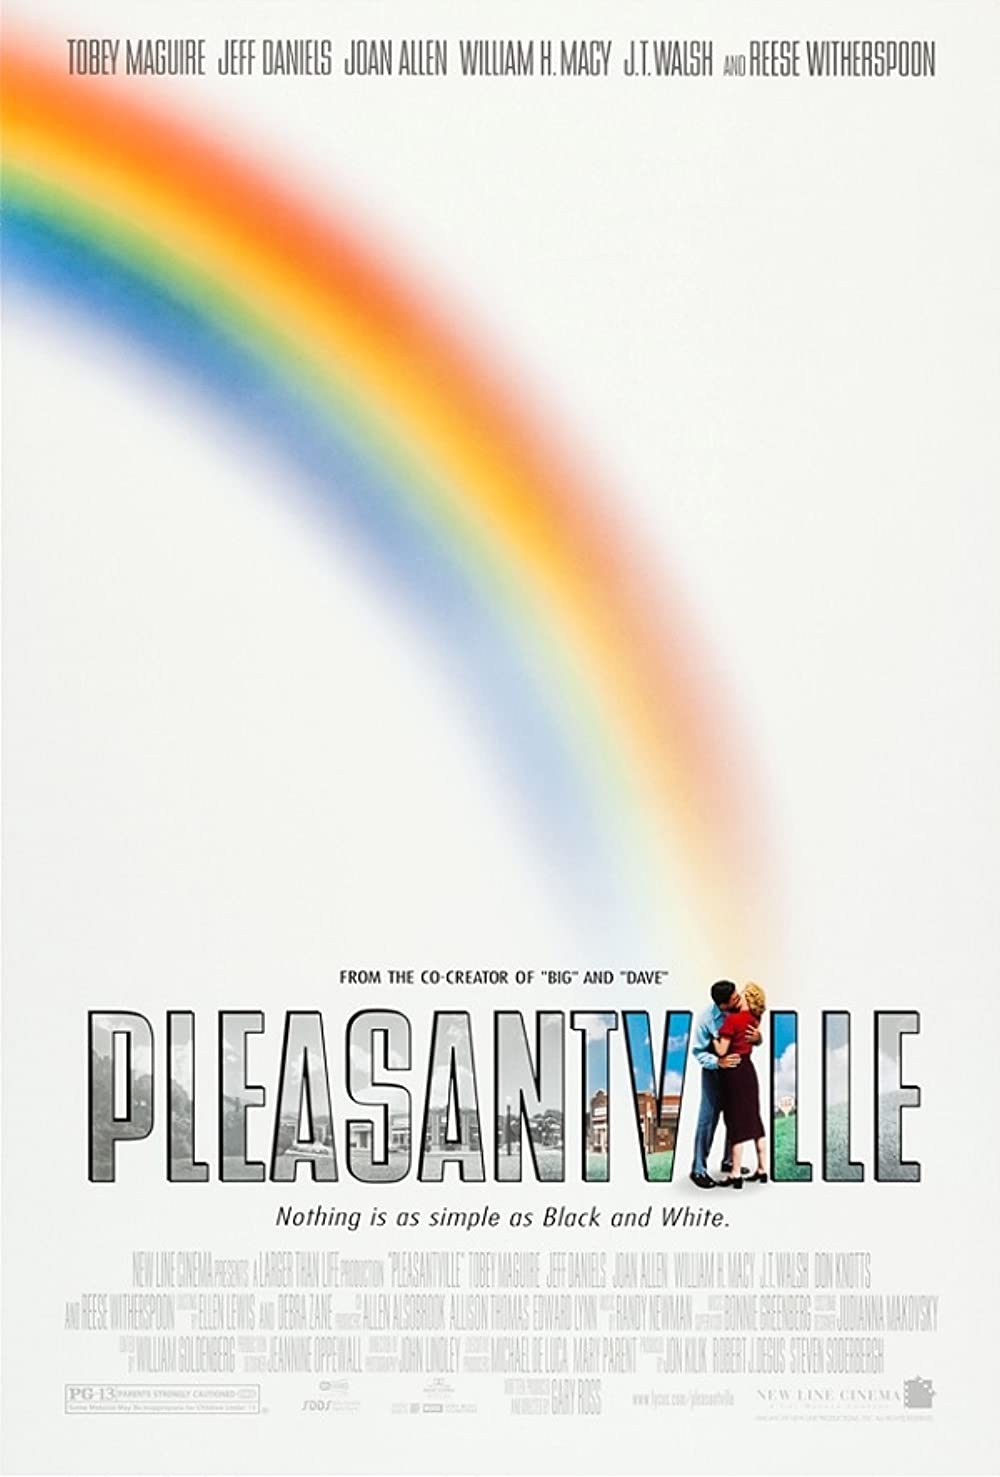 Pleasantville - Zu schön, um wahr zu sein: Directed by Gary Ross. With William H. Macy, Joan Allen, Natalie Ramsey, Kevin Connors. Two 1990s teenage siblings find themselves in a 1950s sitcom, where their influence begins to profoundly change that...